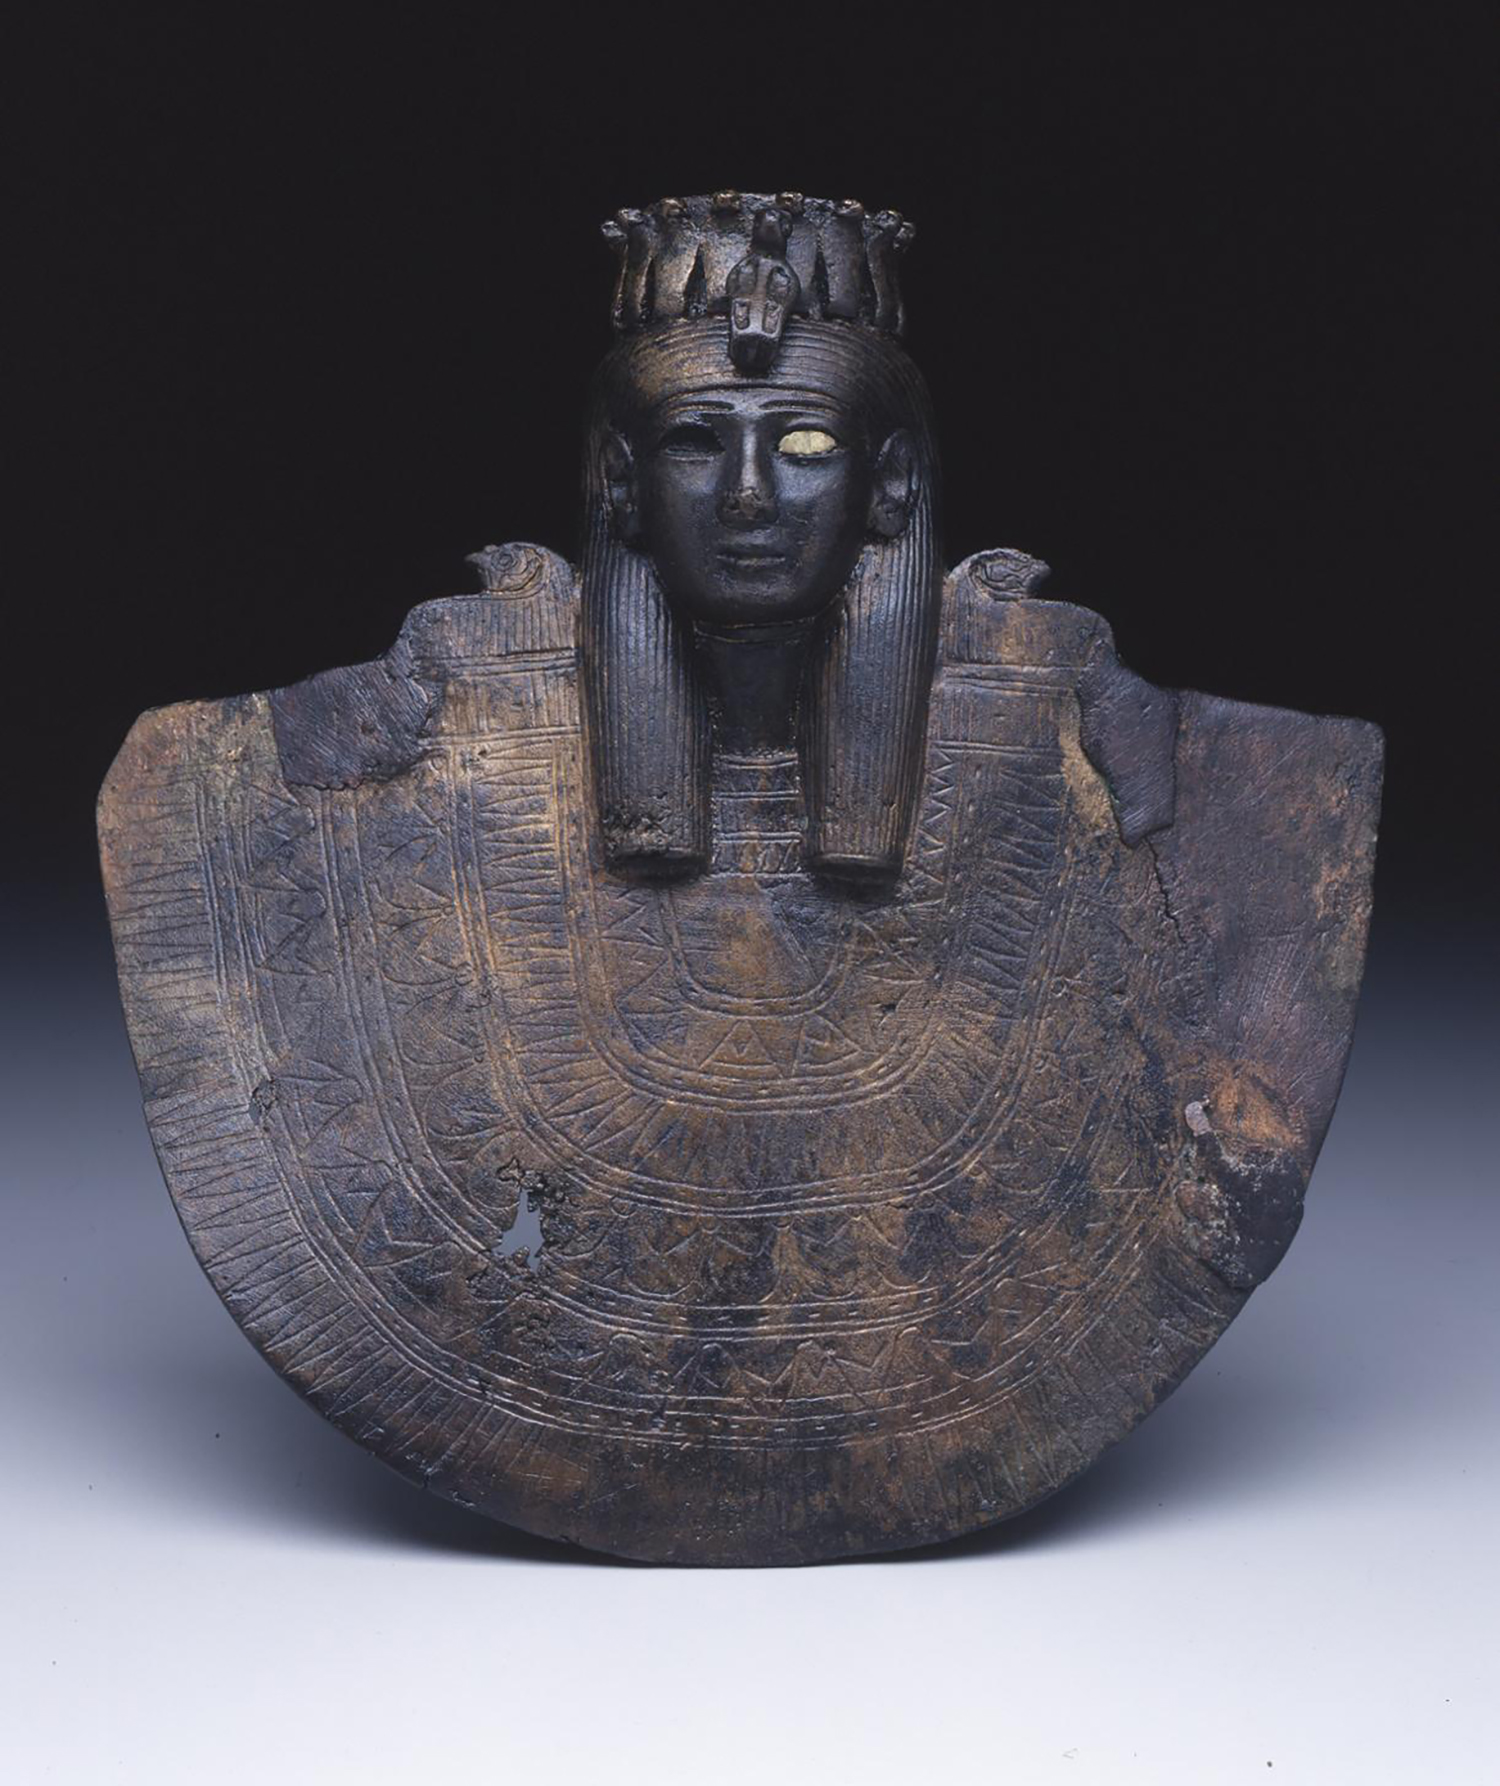 Figure 17:   Aegis  . This bronze  aegis  (see also Figure 16) takes the form of the head of a female deity atop an oversized broad collar. Image courtesy of Penn Museum, E13001.